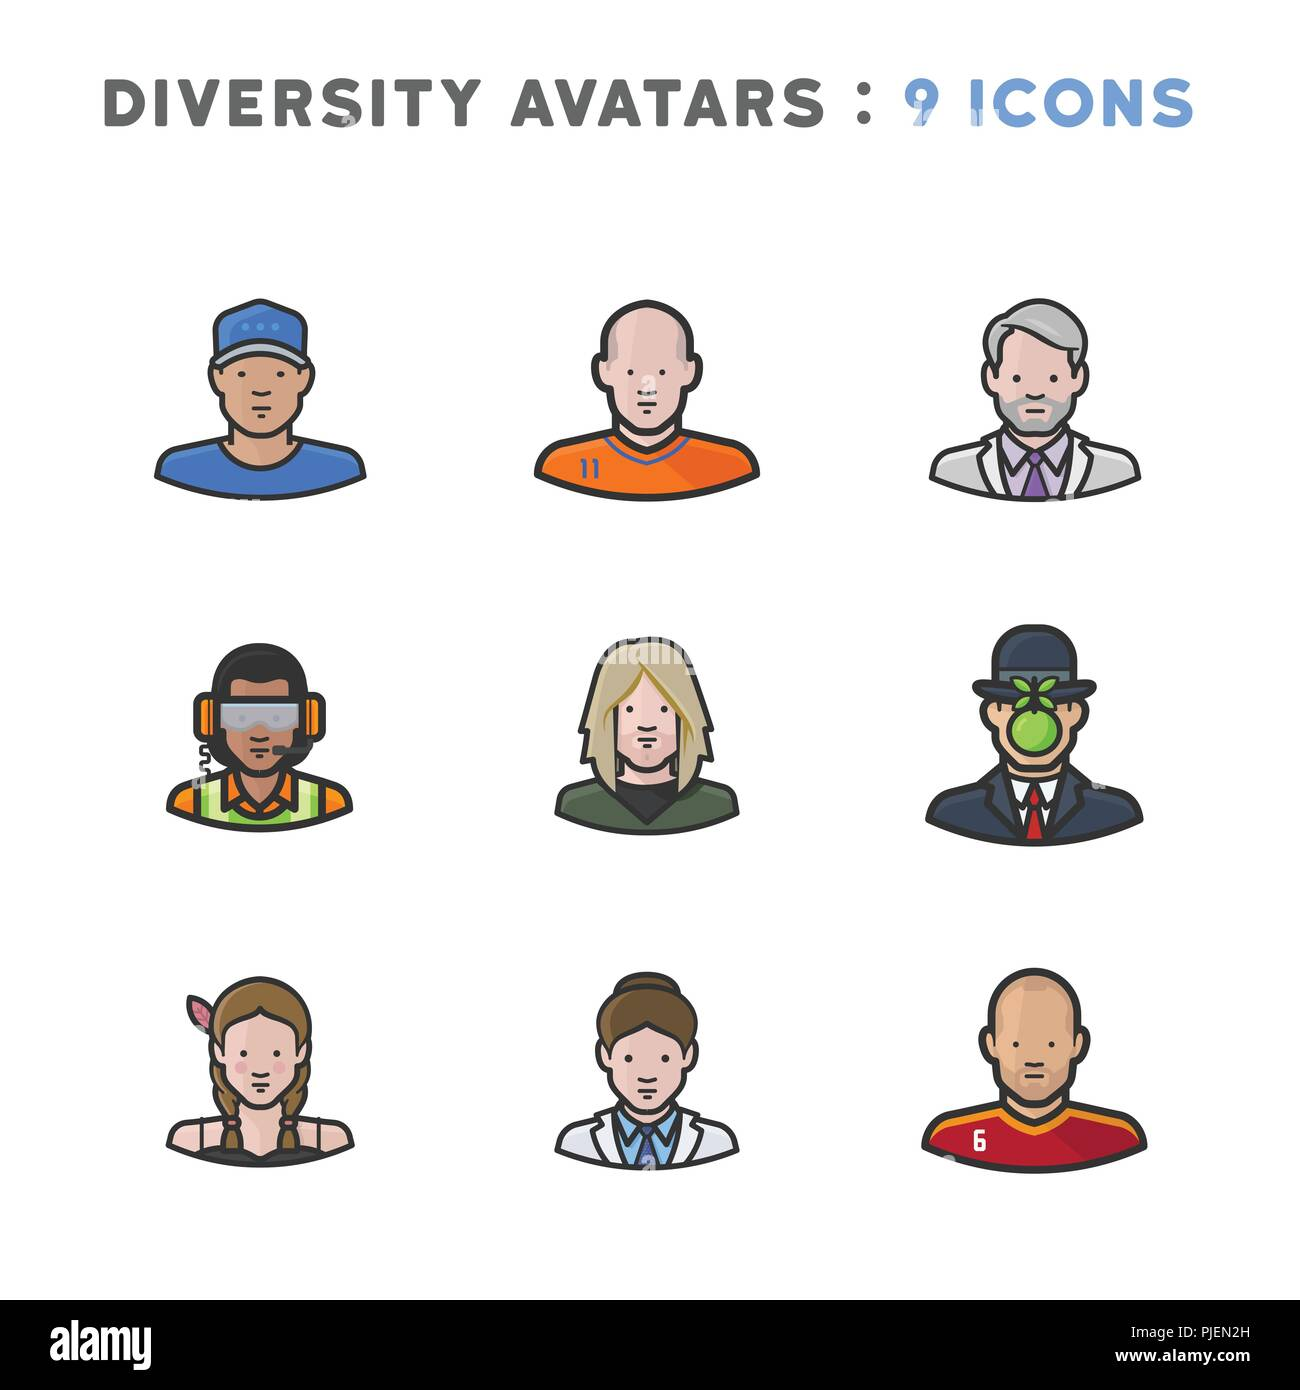 9 Avatars depicting diverse cultures, religions, and nationalities - Stock Vector